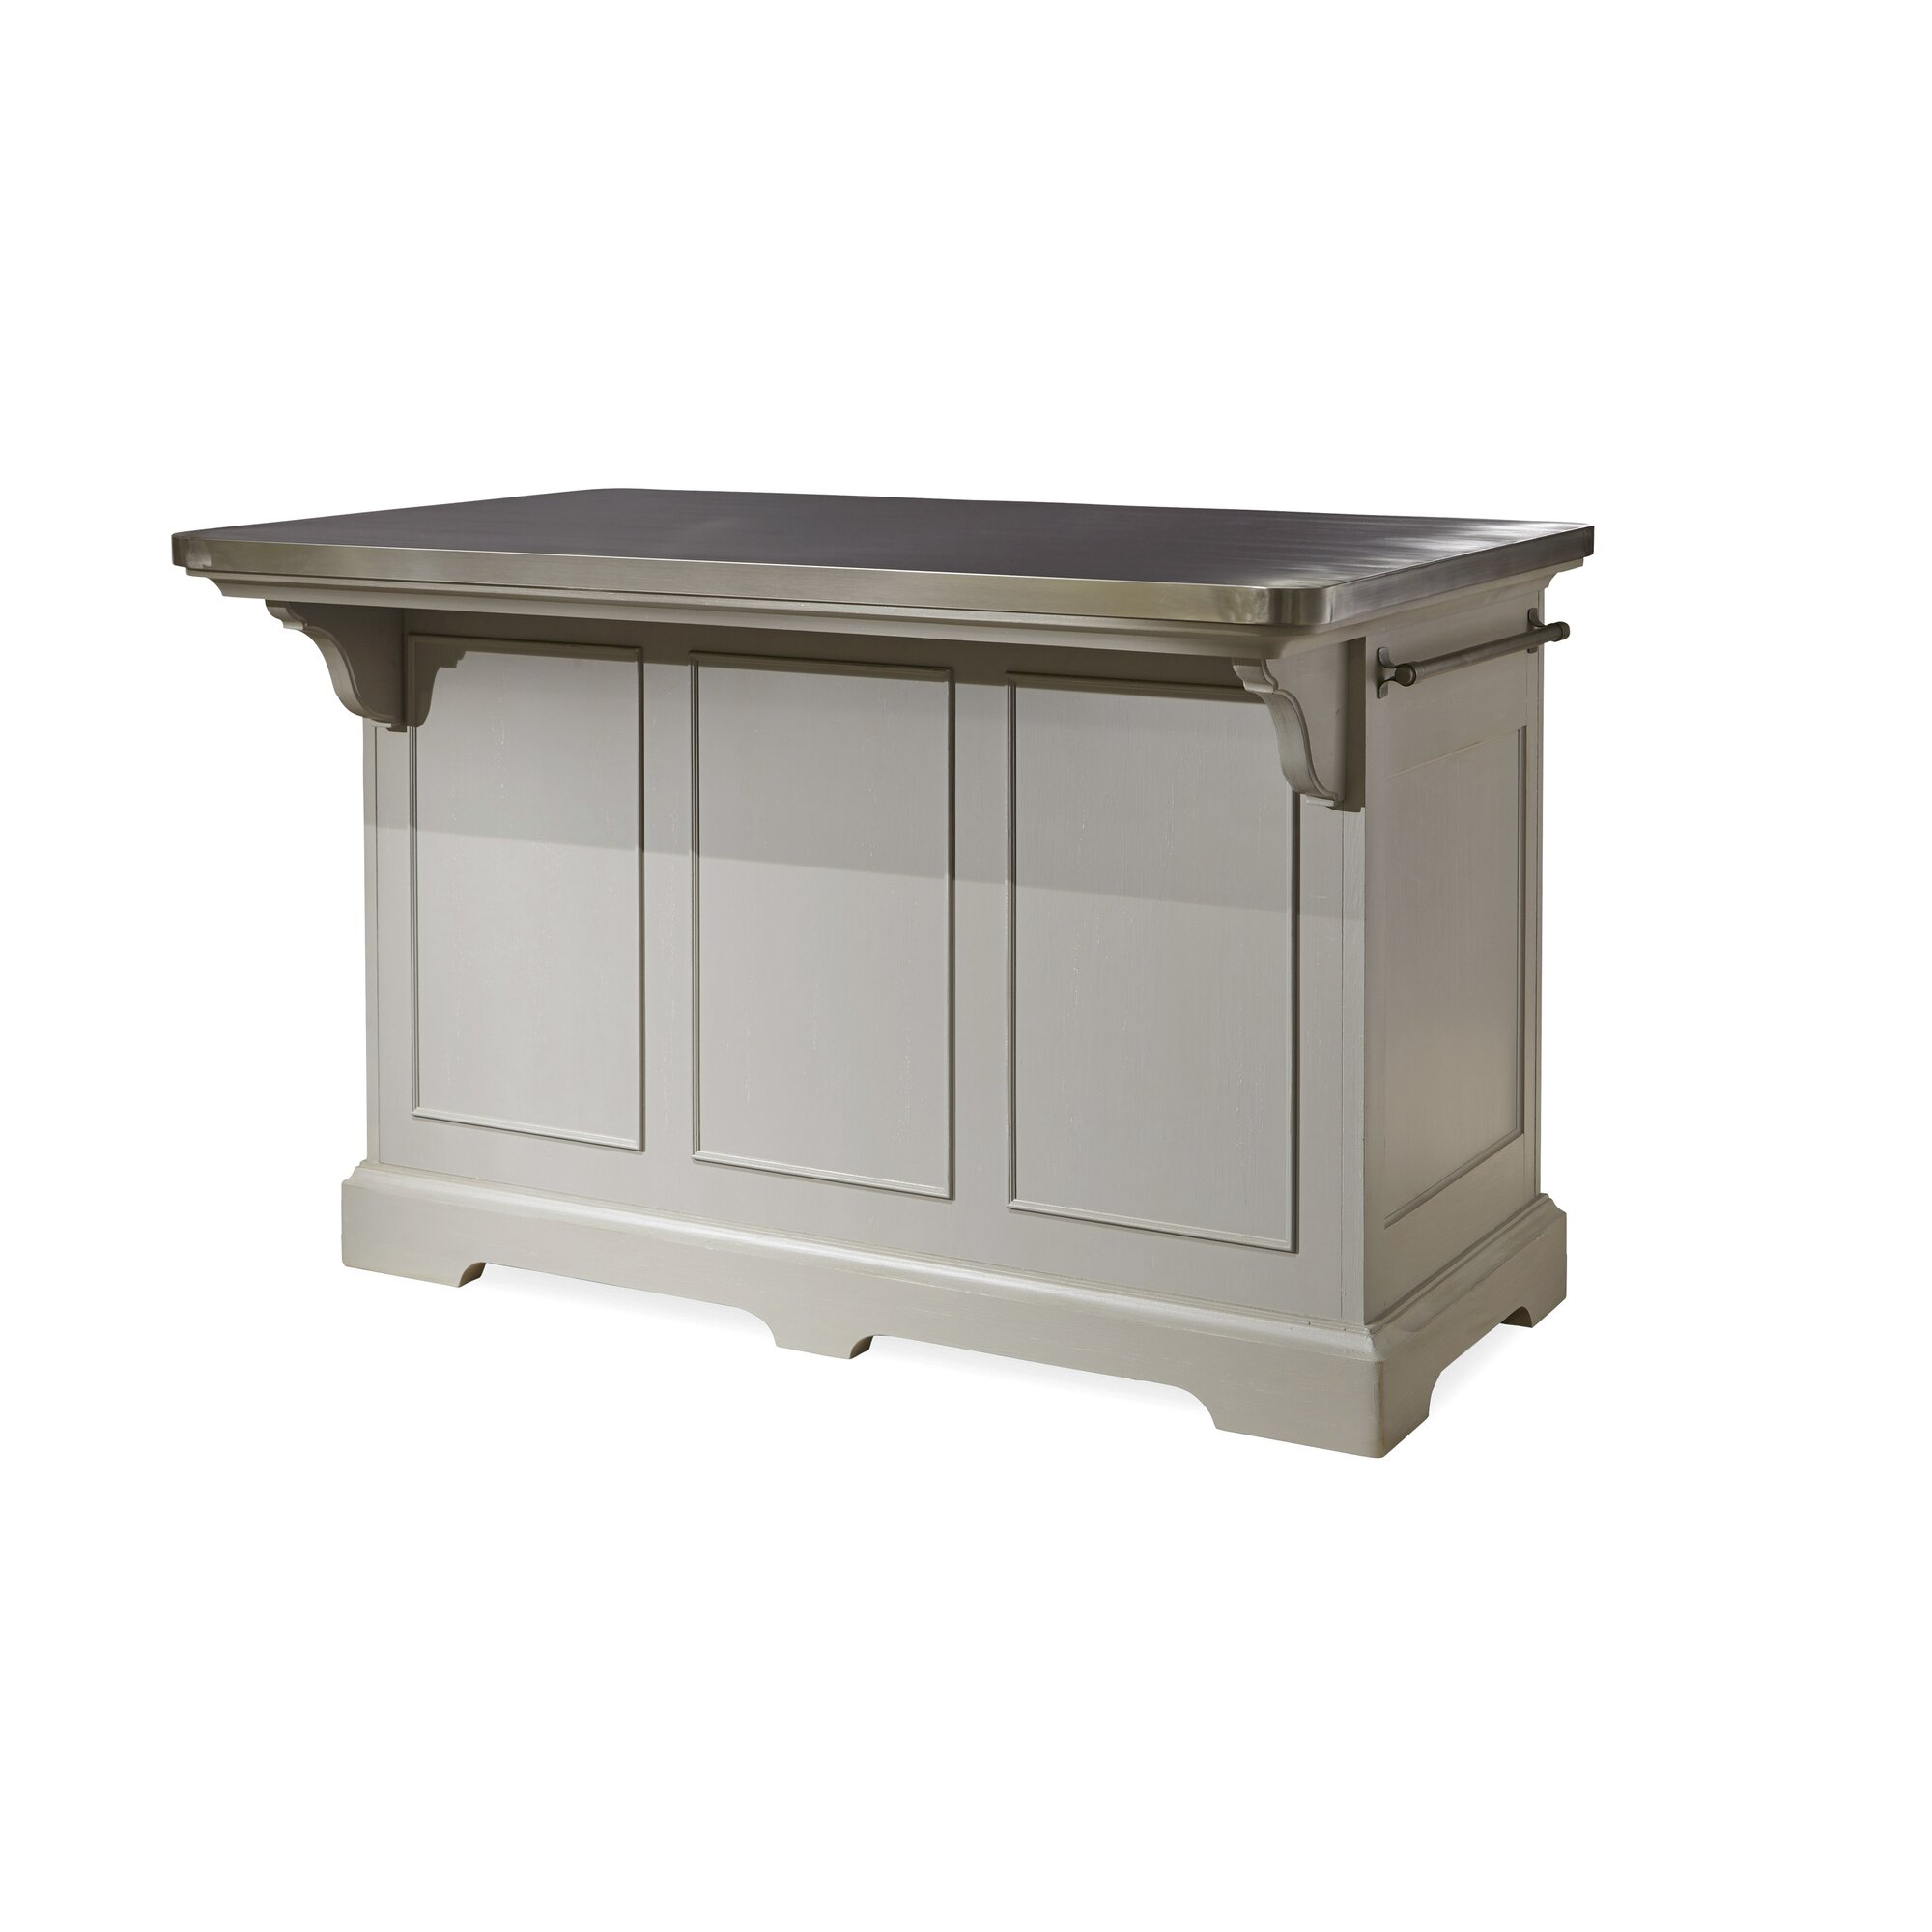 Magnolia Kitchen Island Reviews Joss Main